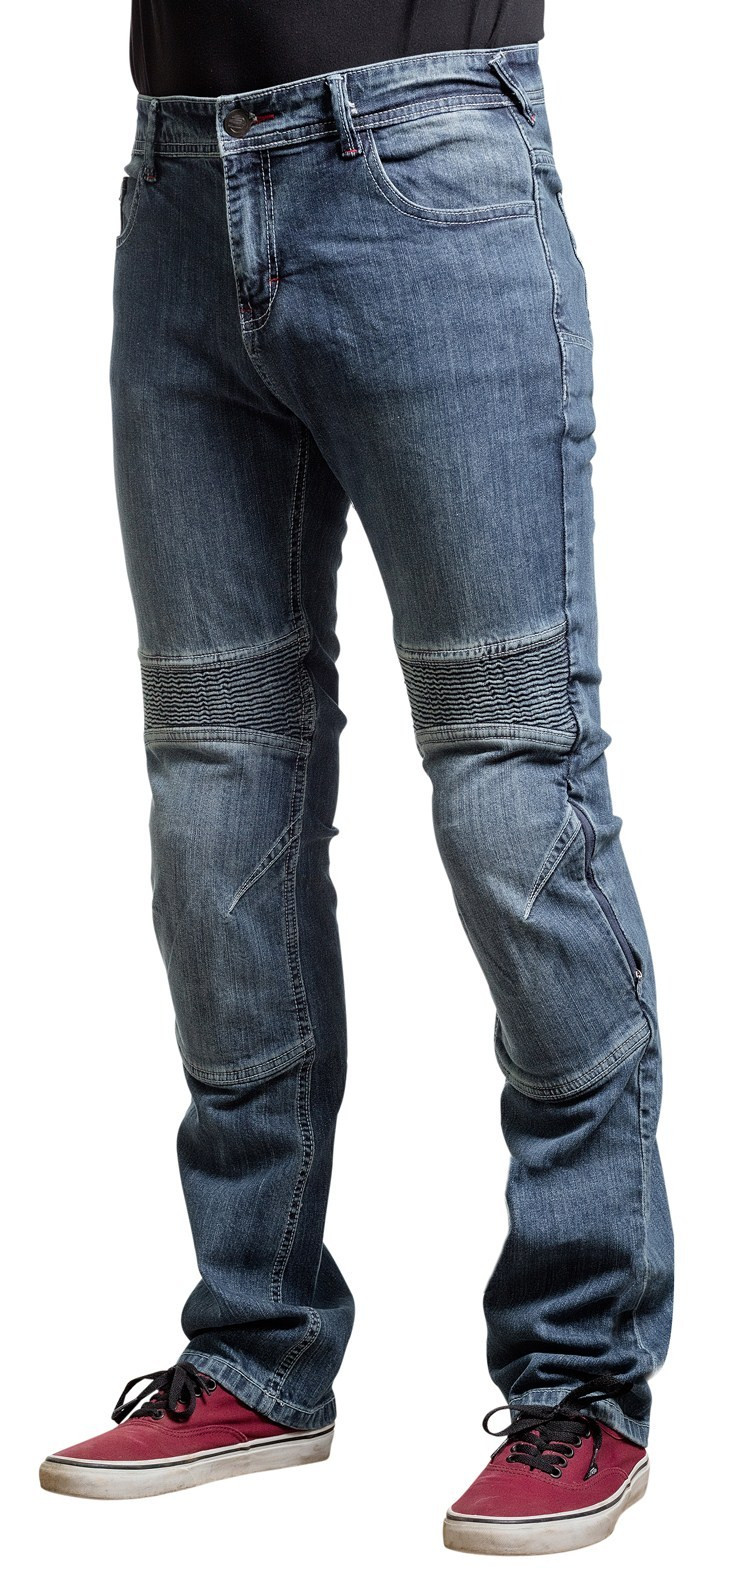 reputable site f1a6a 85231 Befast Iron Tech jeans